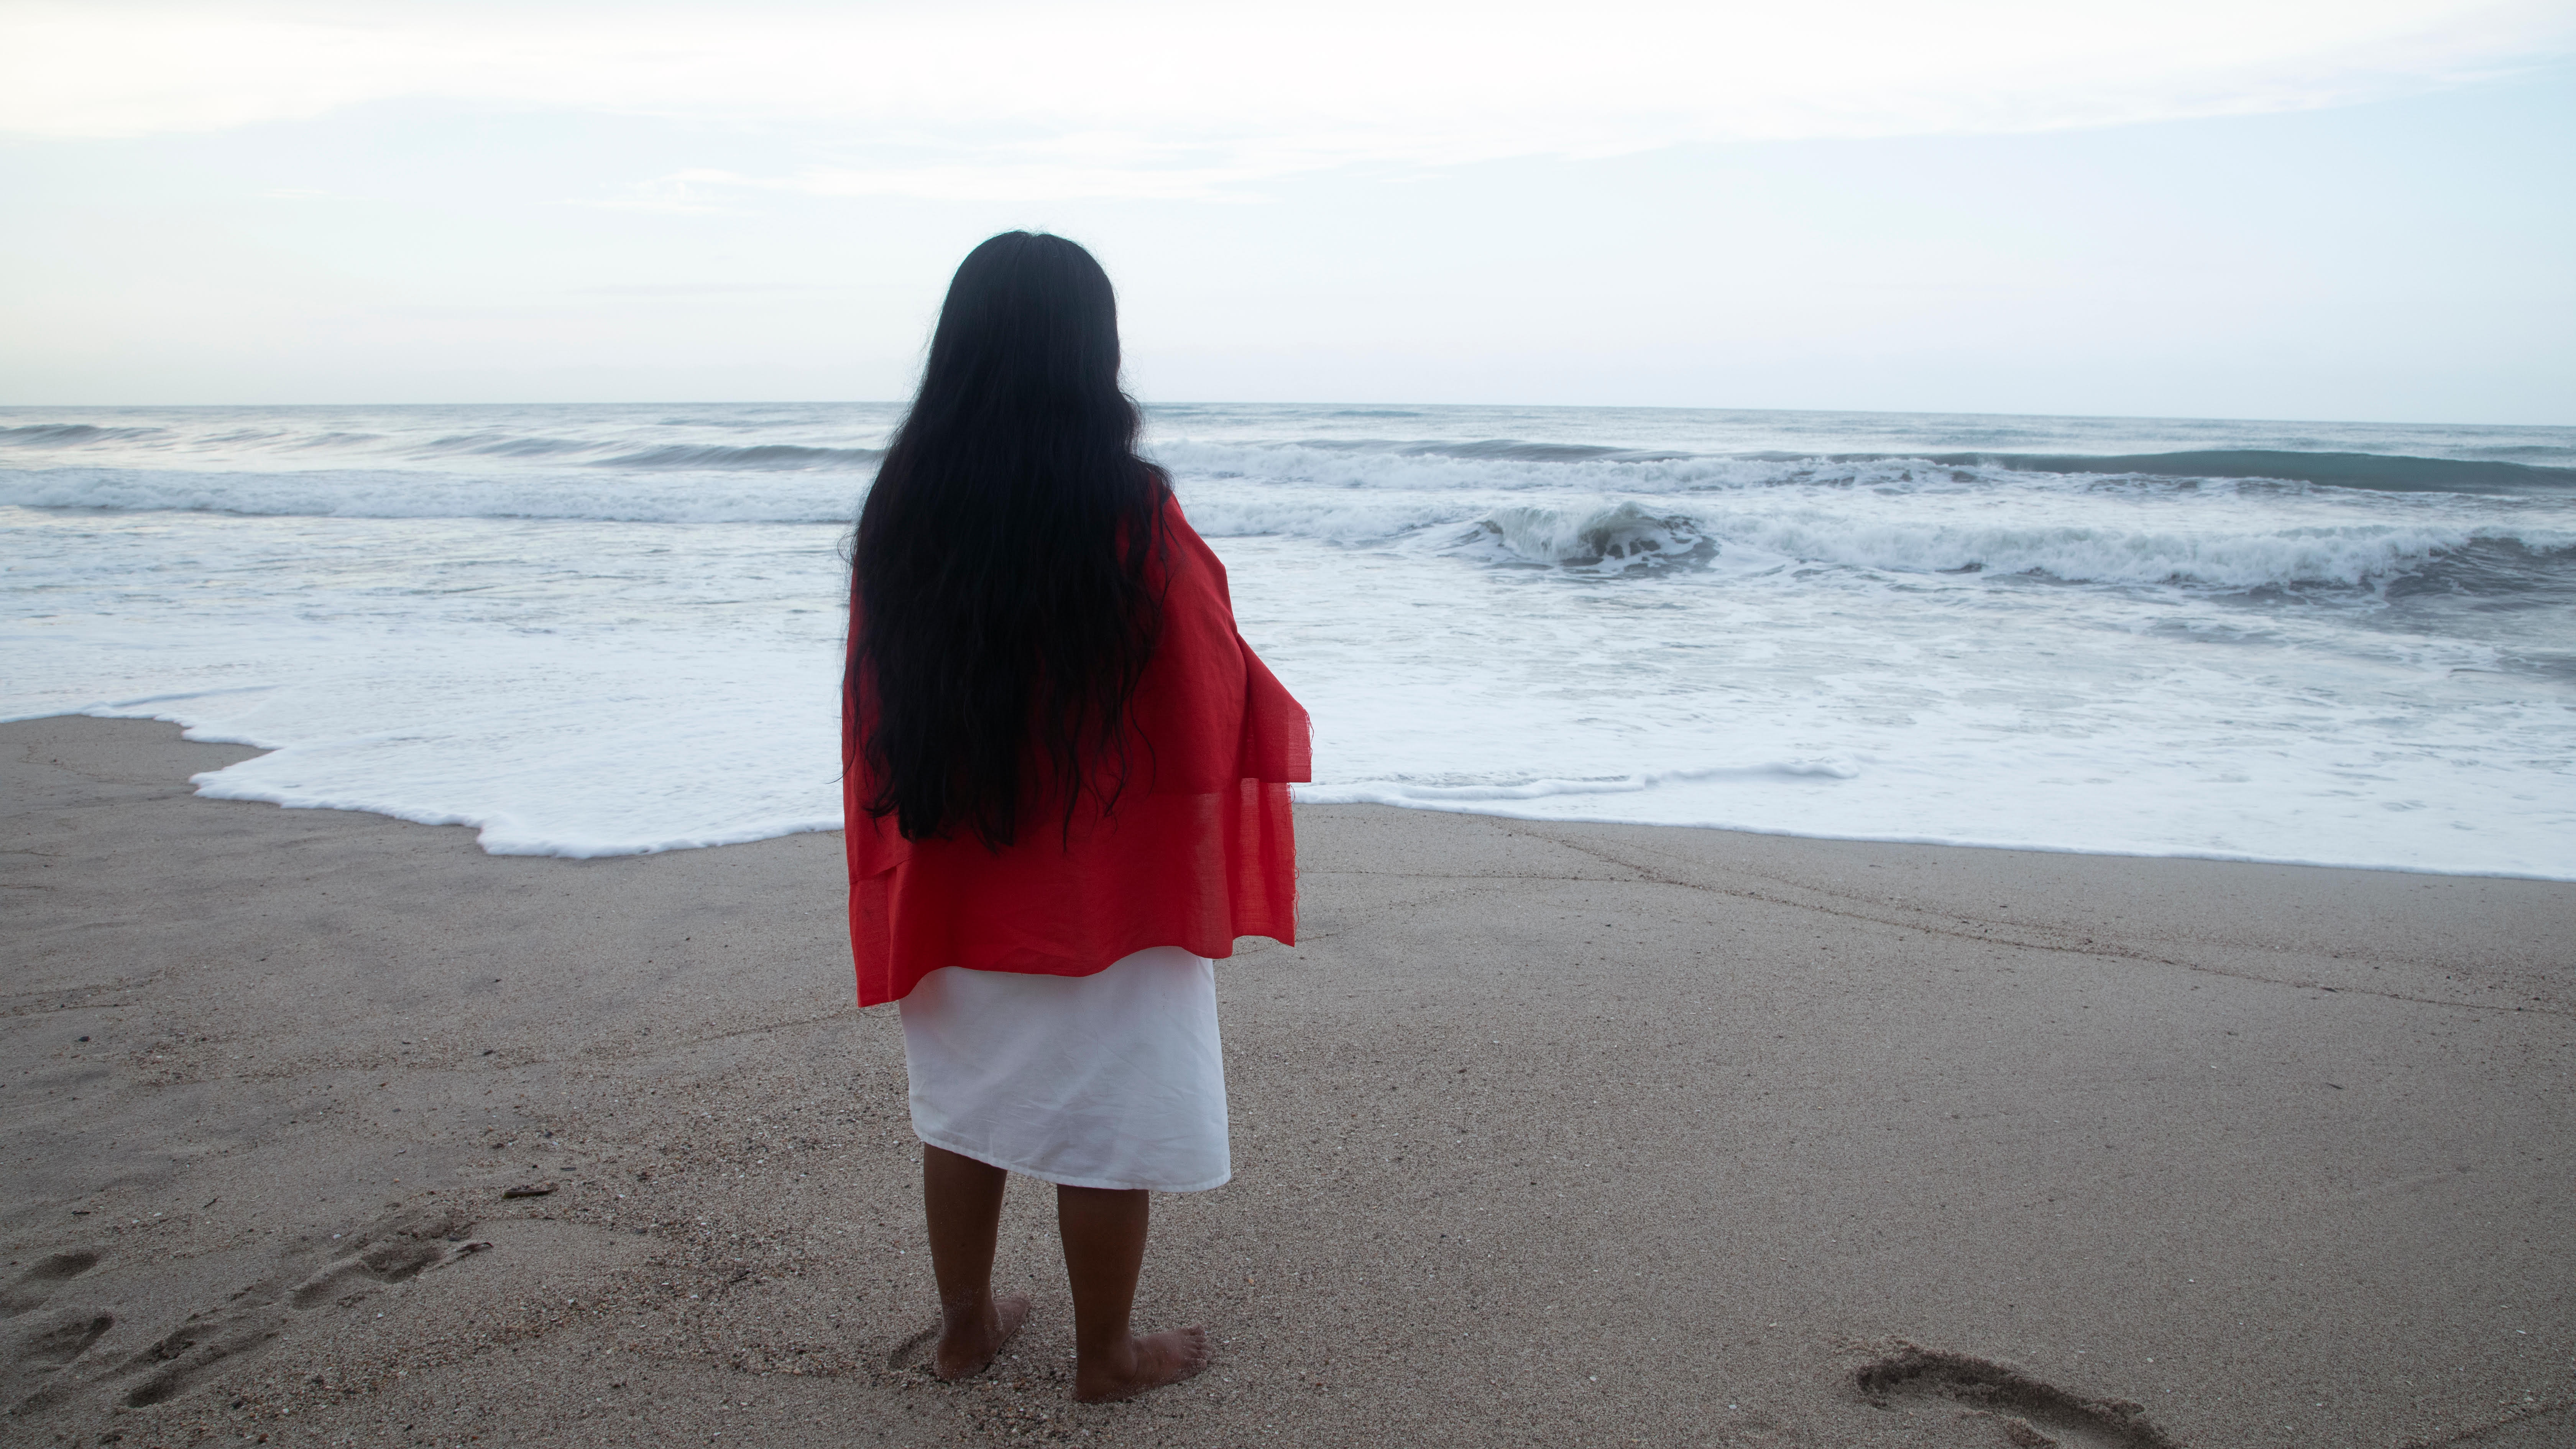 A person in a red shawl and white dress stands at the edge of the water on a beach with their back to the camera